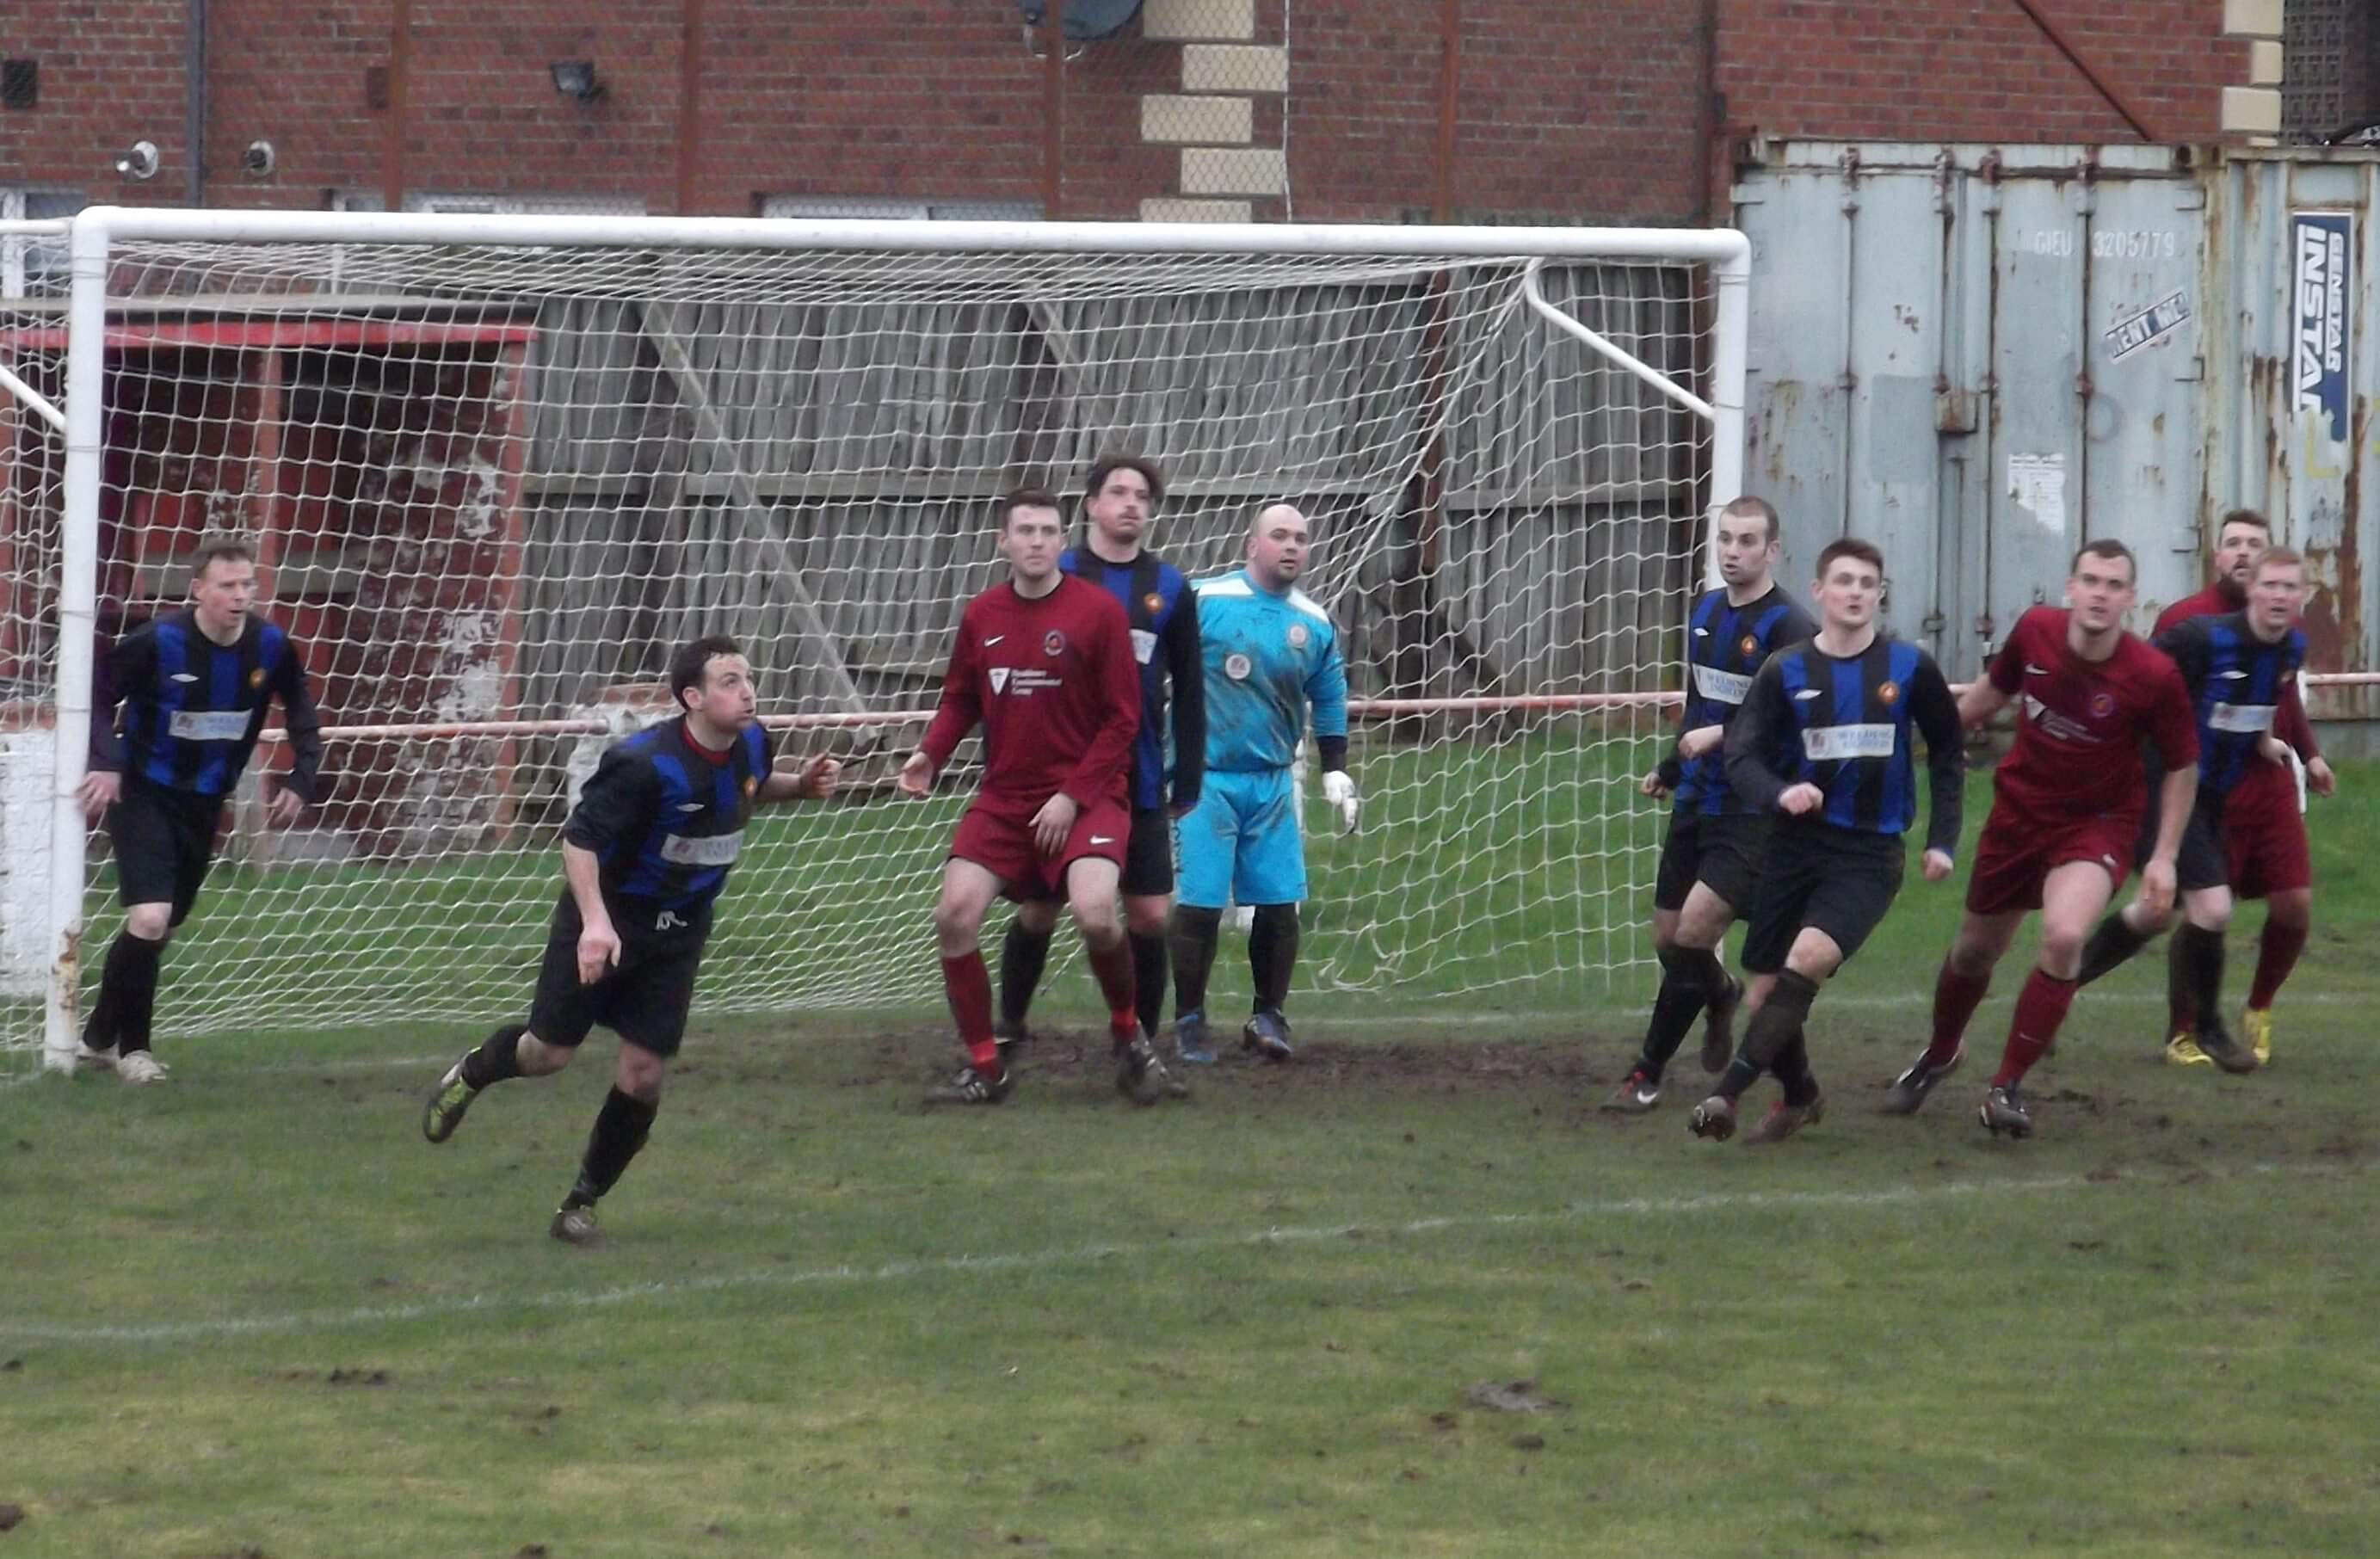 Jags defend a corner in the second half